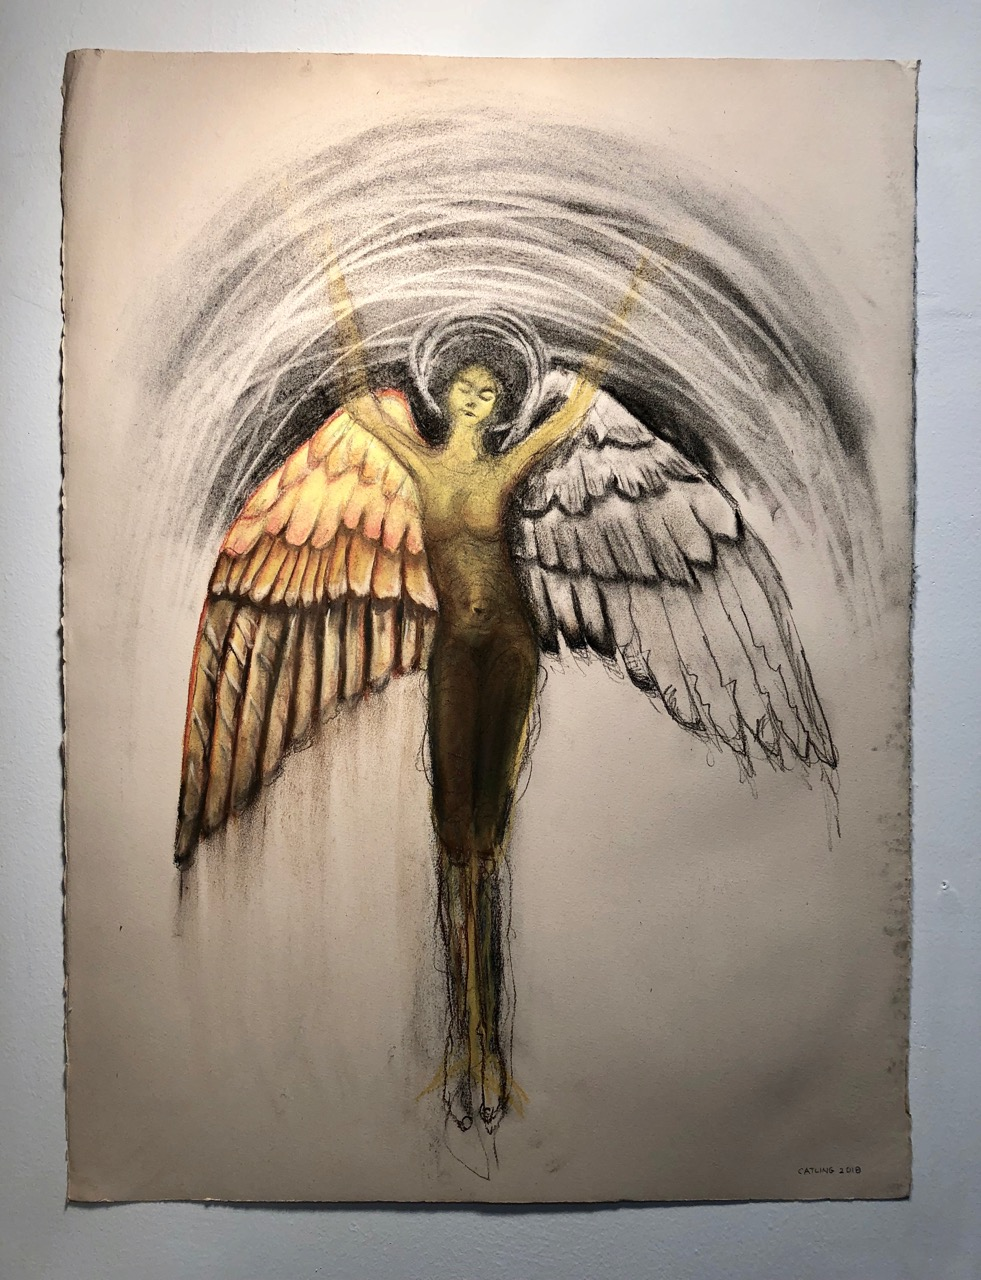 Winged orante   2018  Graphite, charcoal and chalk on paper  30 x 22""